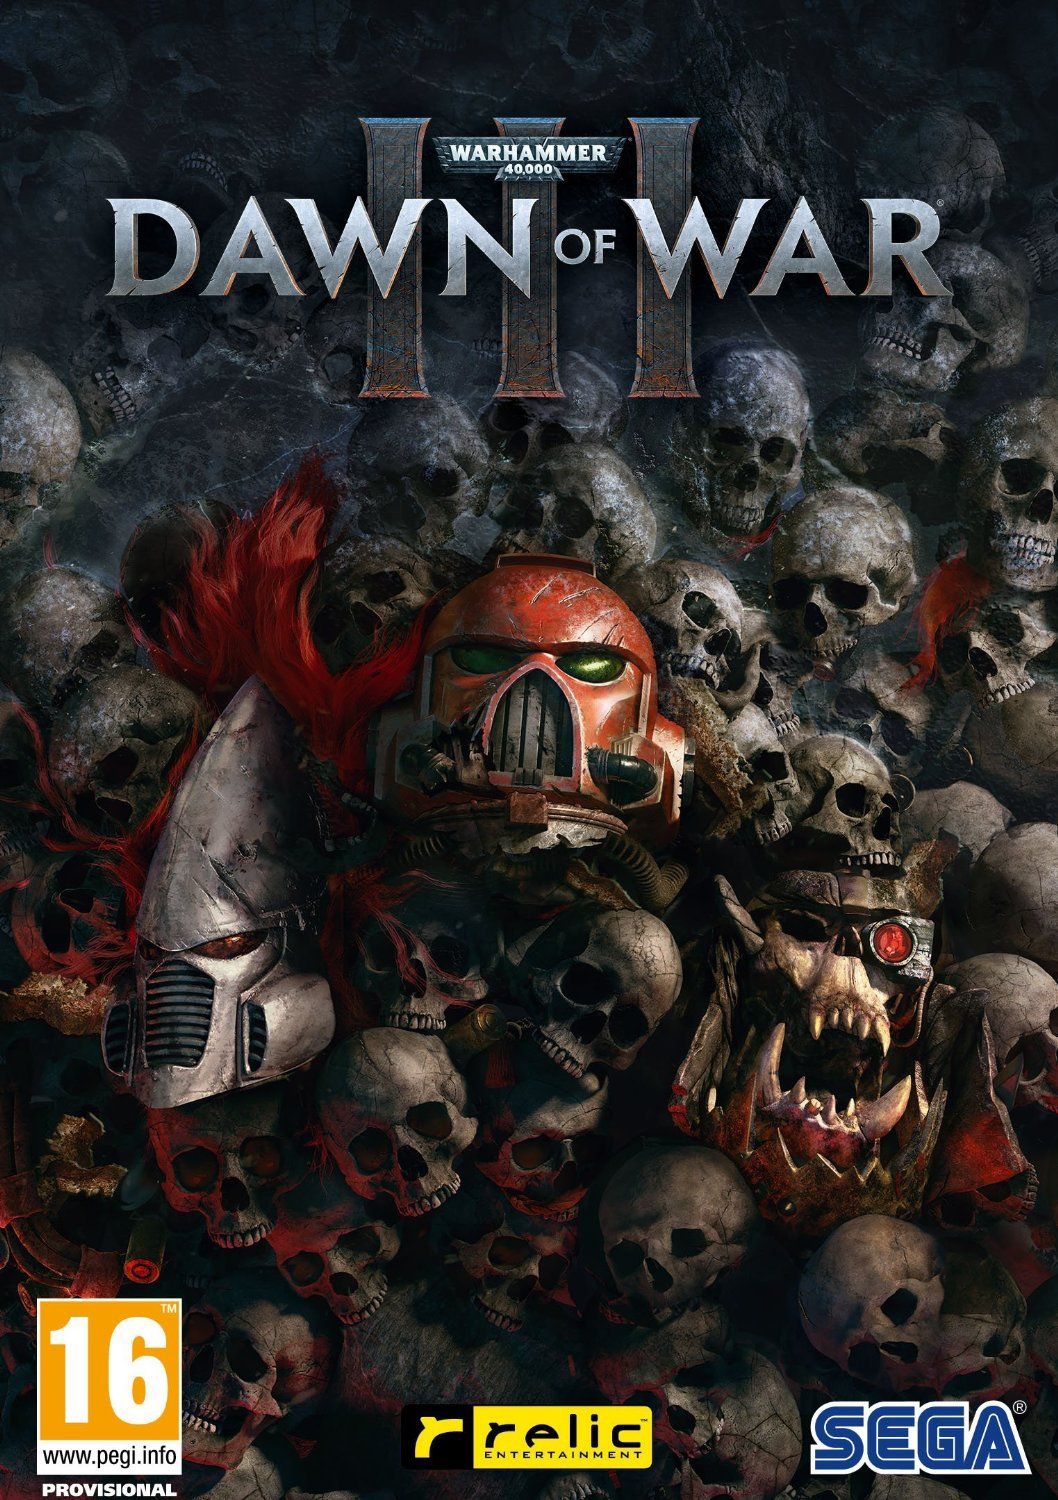 Image of Dawn of War 3 PC Pre-order Game